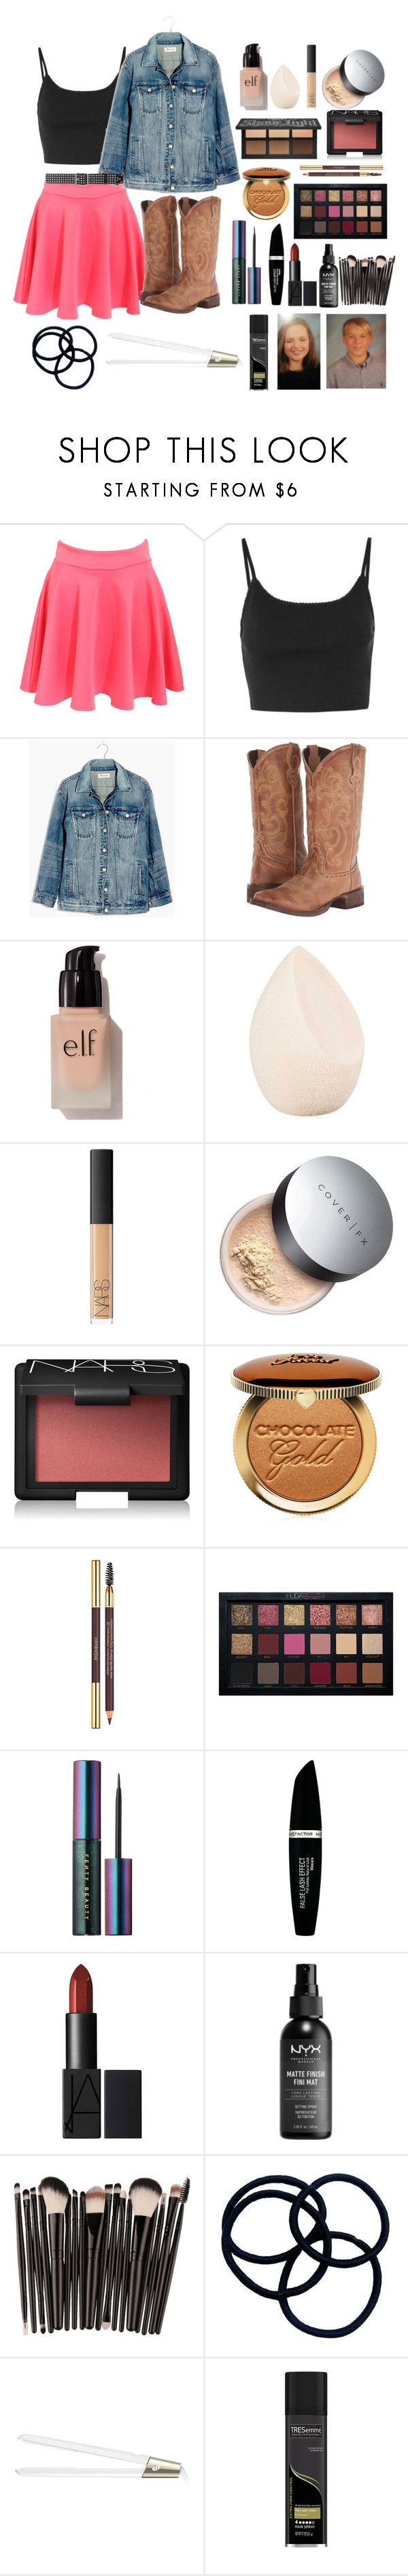 """Untitled #820"" by riddle-me-bliss ❤ liked on Polyvore featuring Pilot, Topshop, Madewell, Roper, e.l.f., Christian Dior, NARS Cosmetics, Cover FX, Too Faced Cosmetics and Yves Saint Laurent"